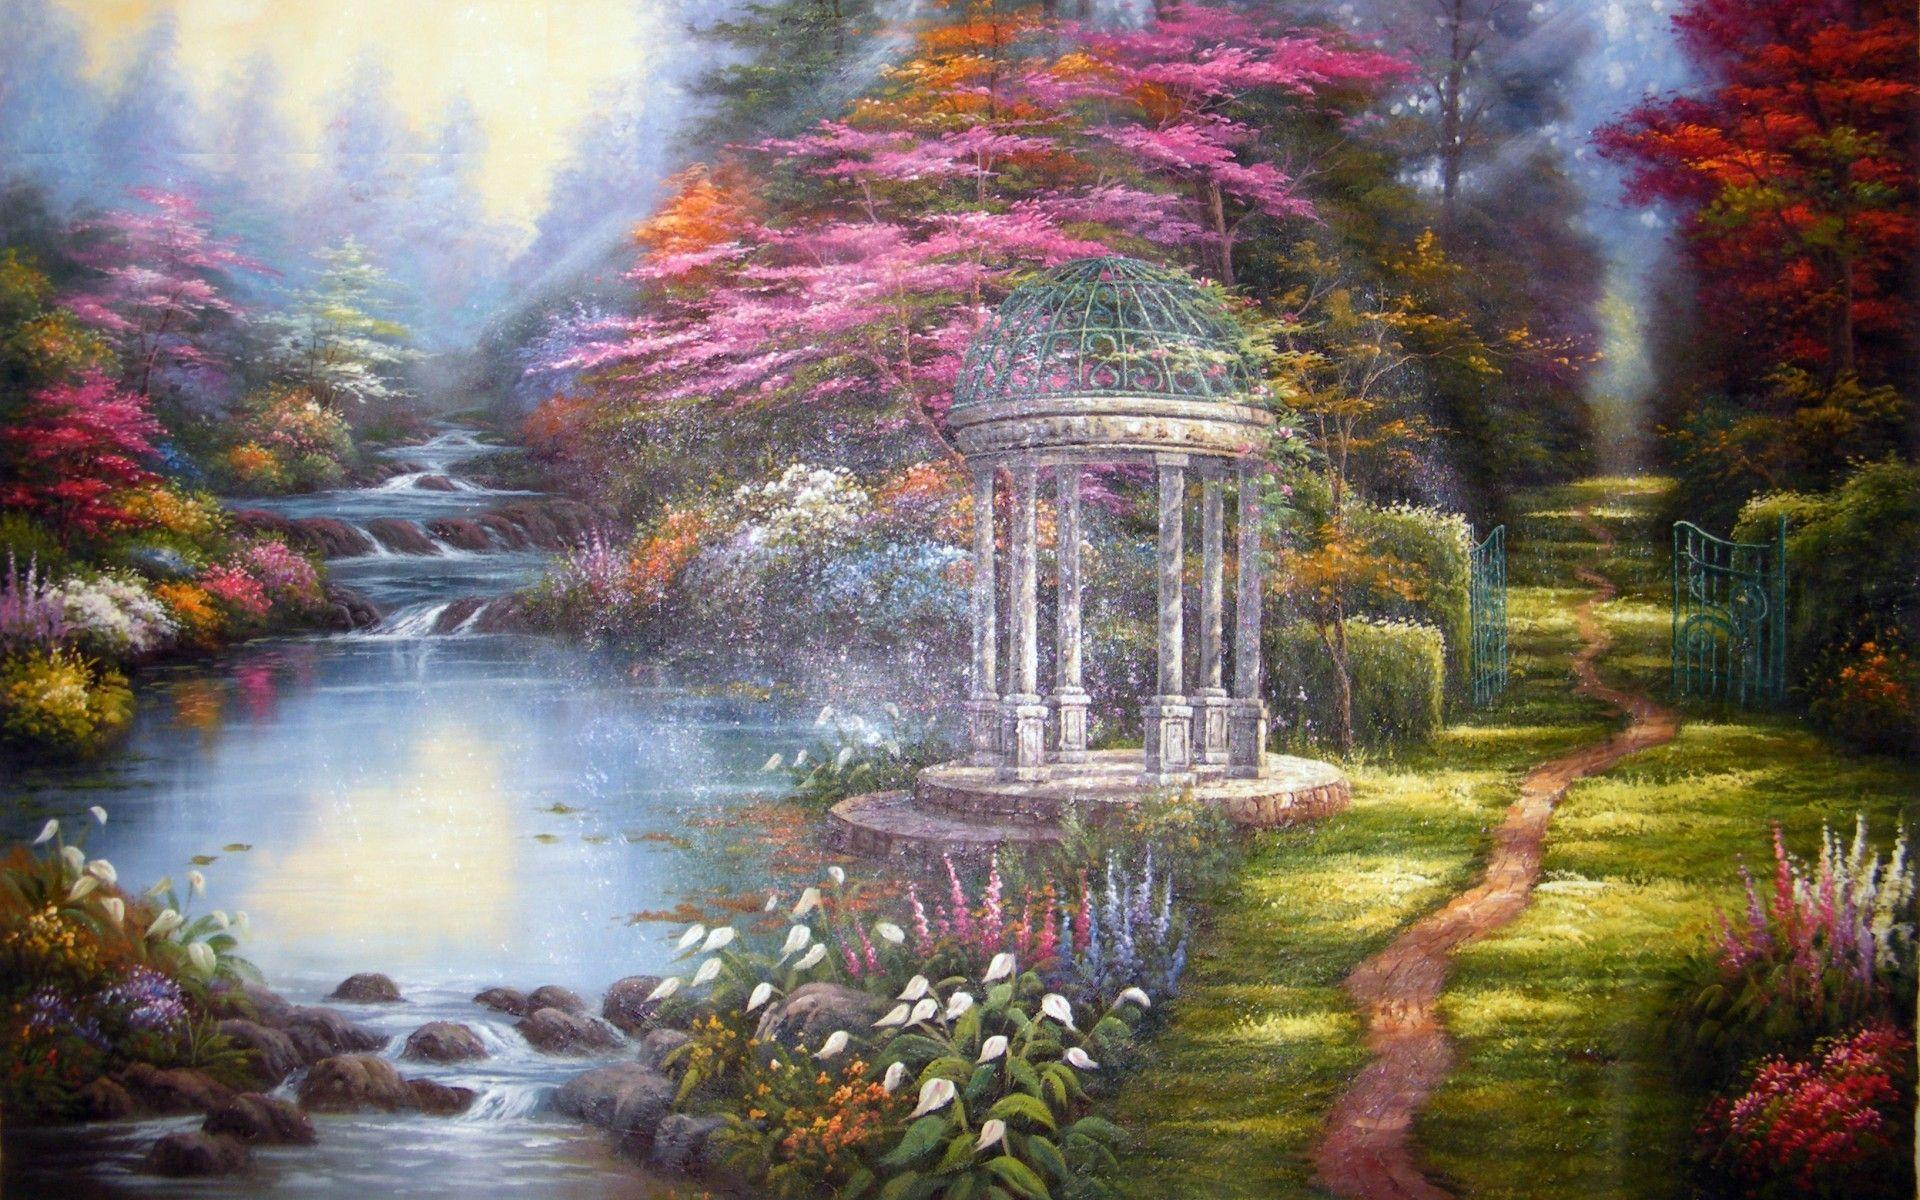 thomas kinkade wallpaper 1920x1080 - photo #1